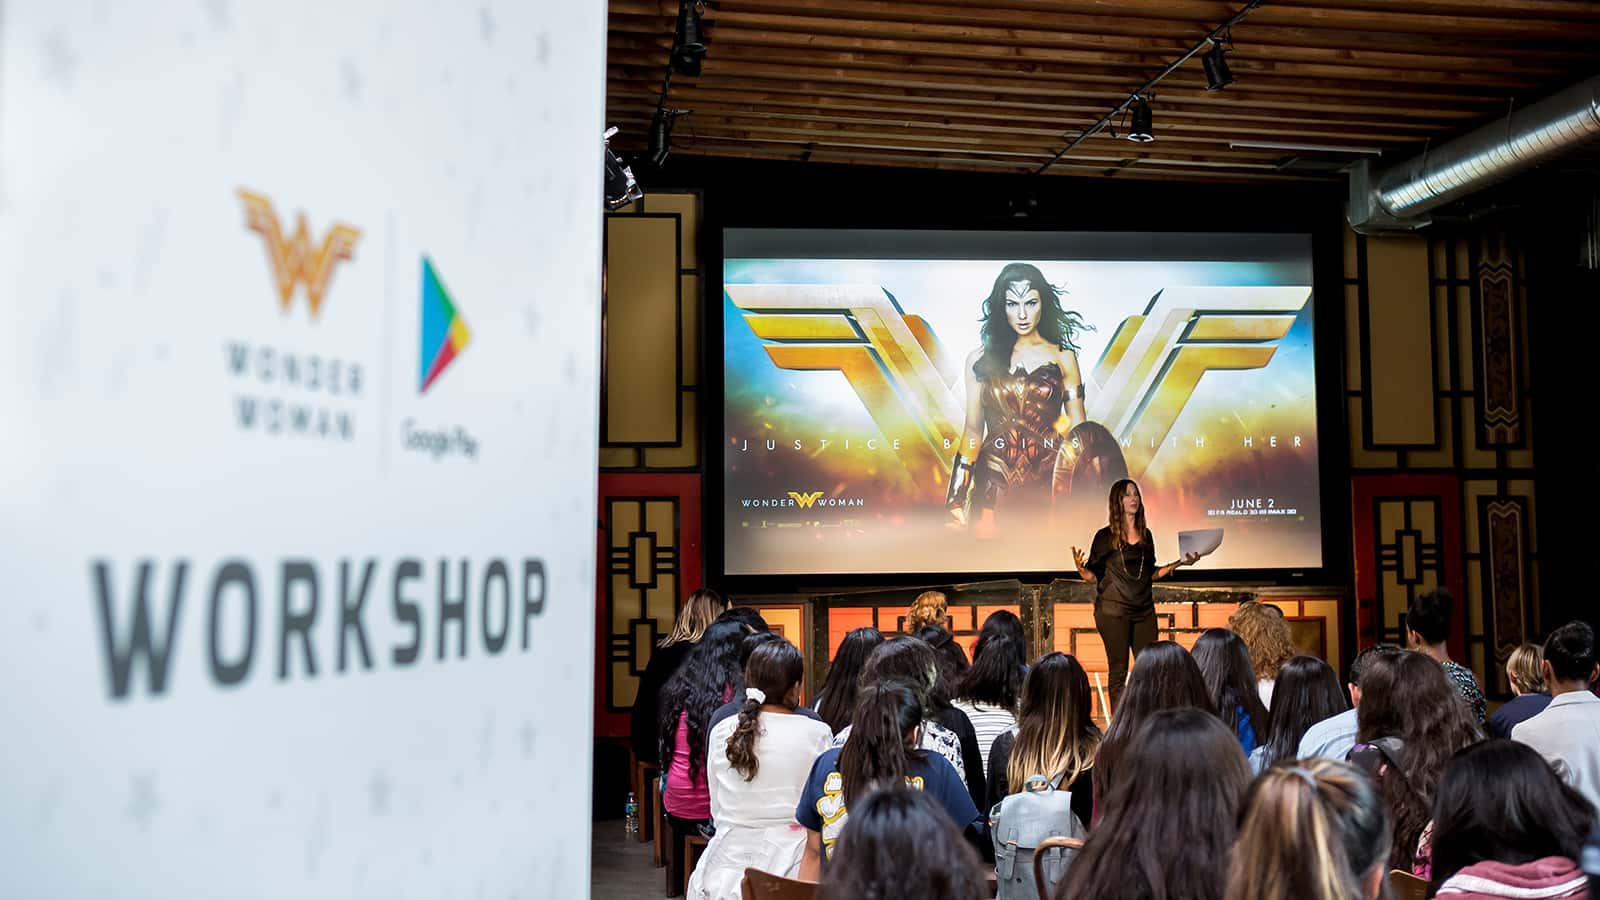 Presentation begins at the Google Made with Code Wonder Woman 2017 event.